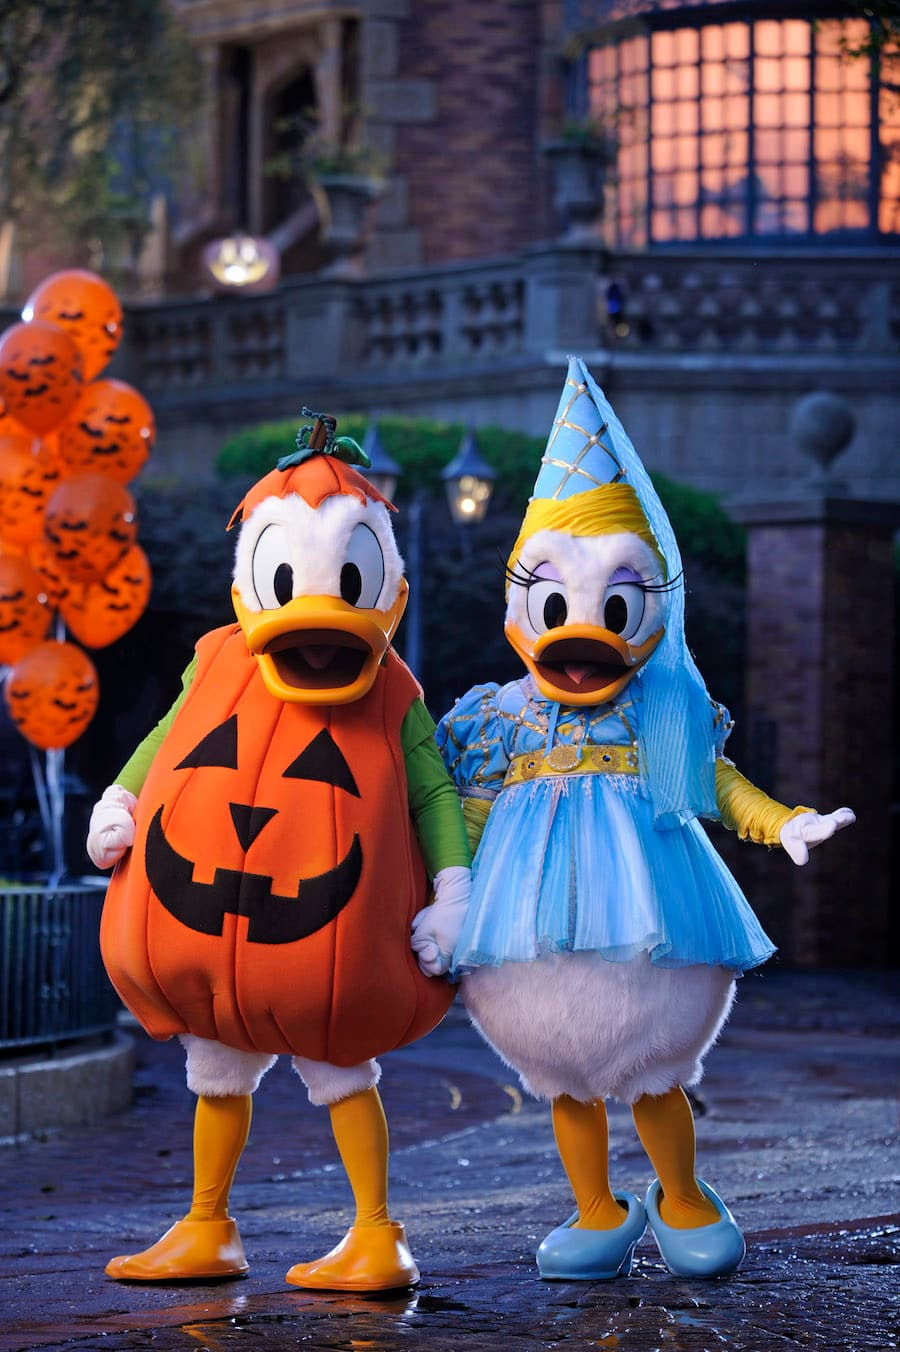 See Disney Characters in Halloween Costumes During Mickey's Not-So-Scary Halloween Party